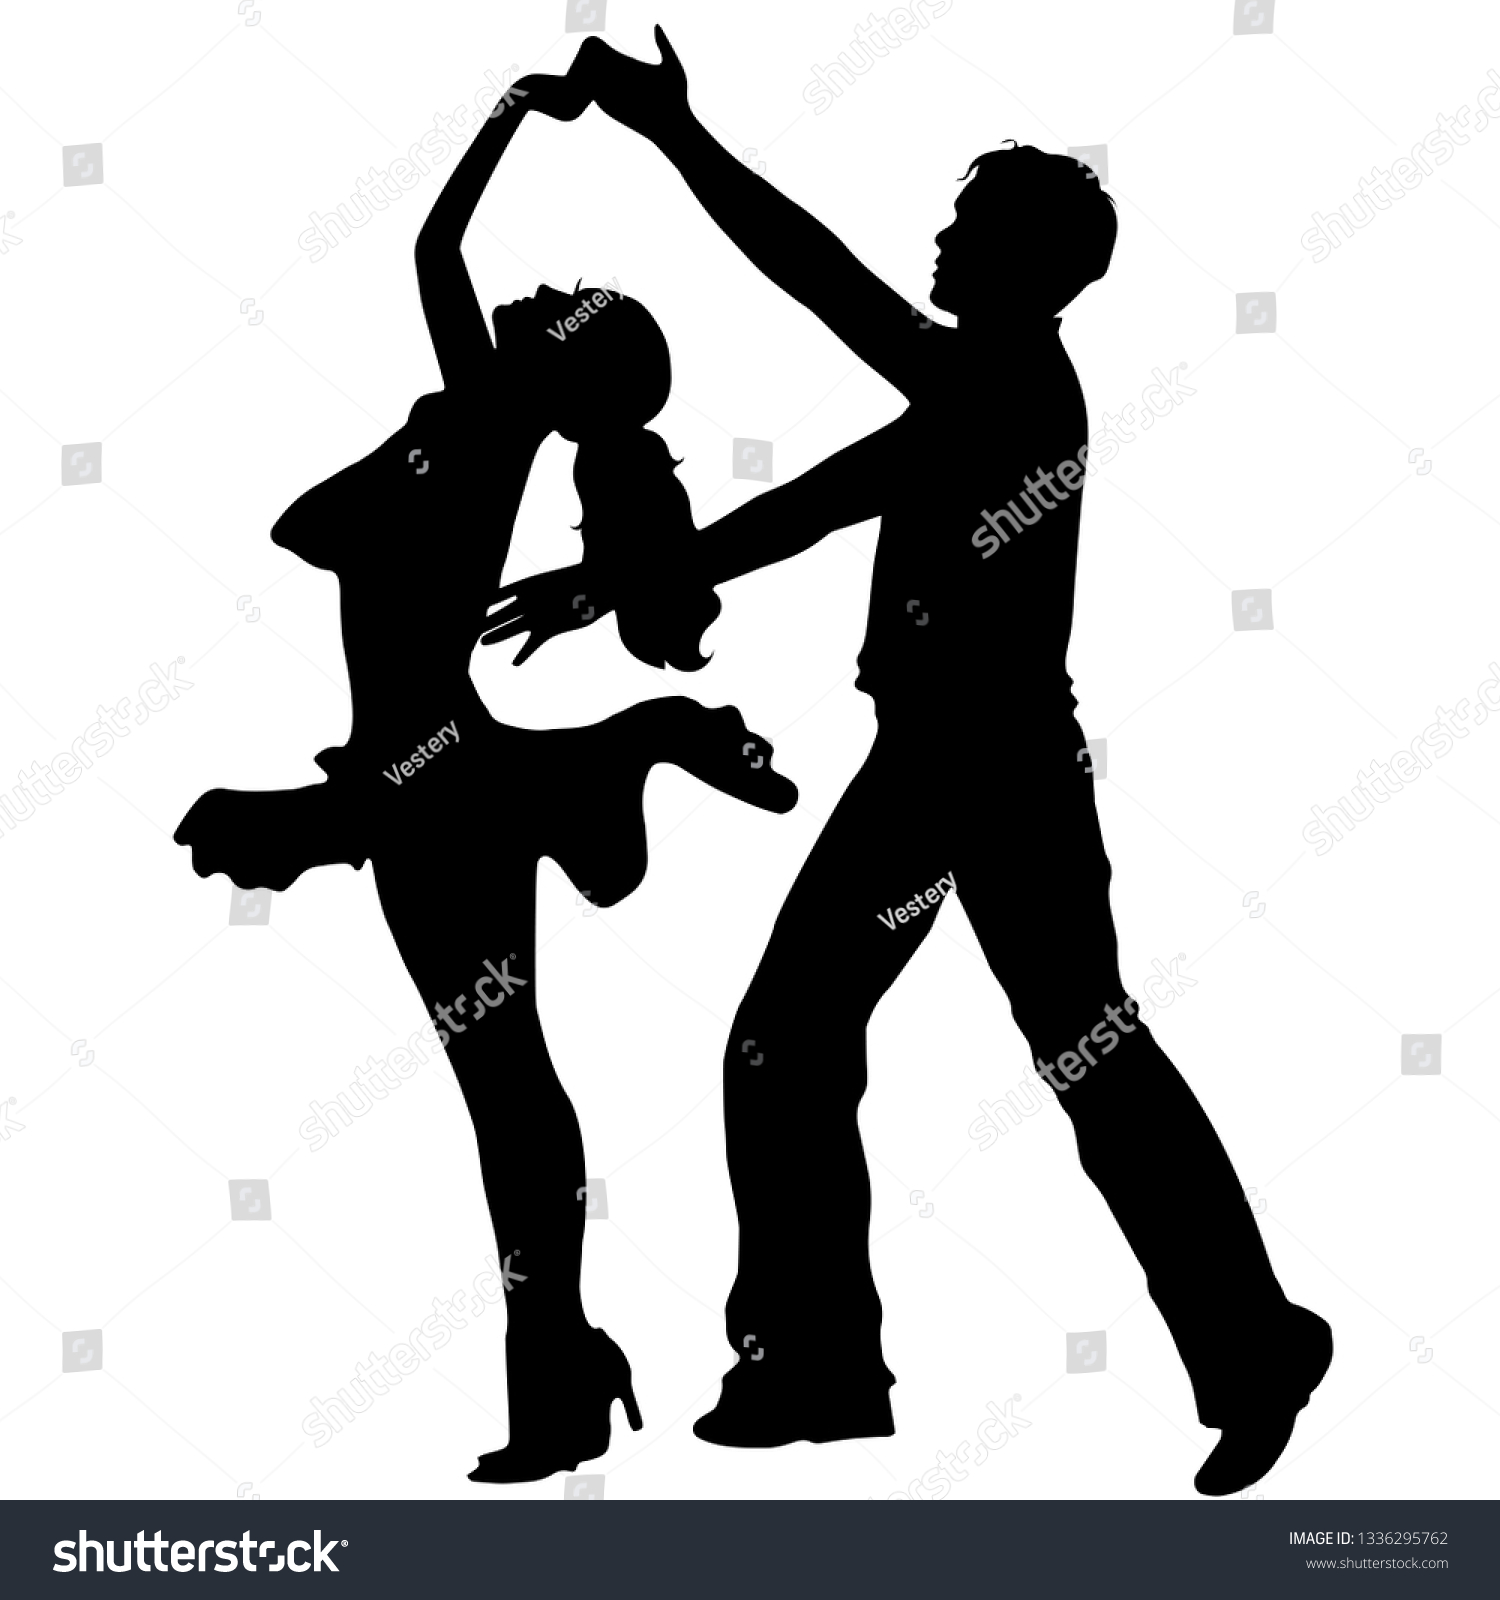 C En A Vesten Silhouette Dancing Couple Latin American Dance Stock Vector